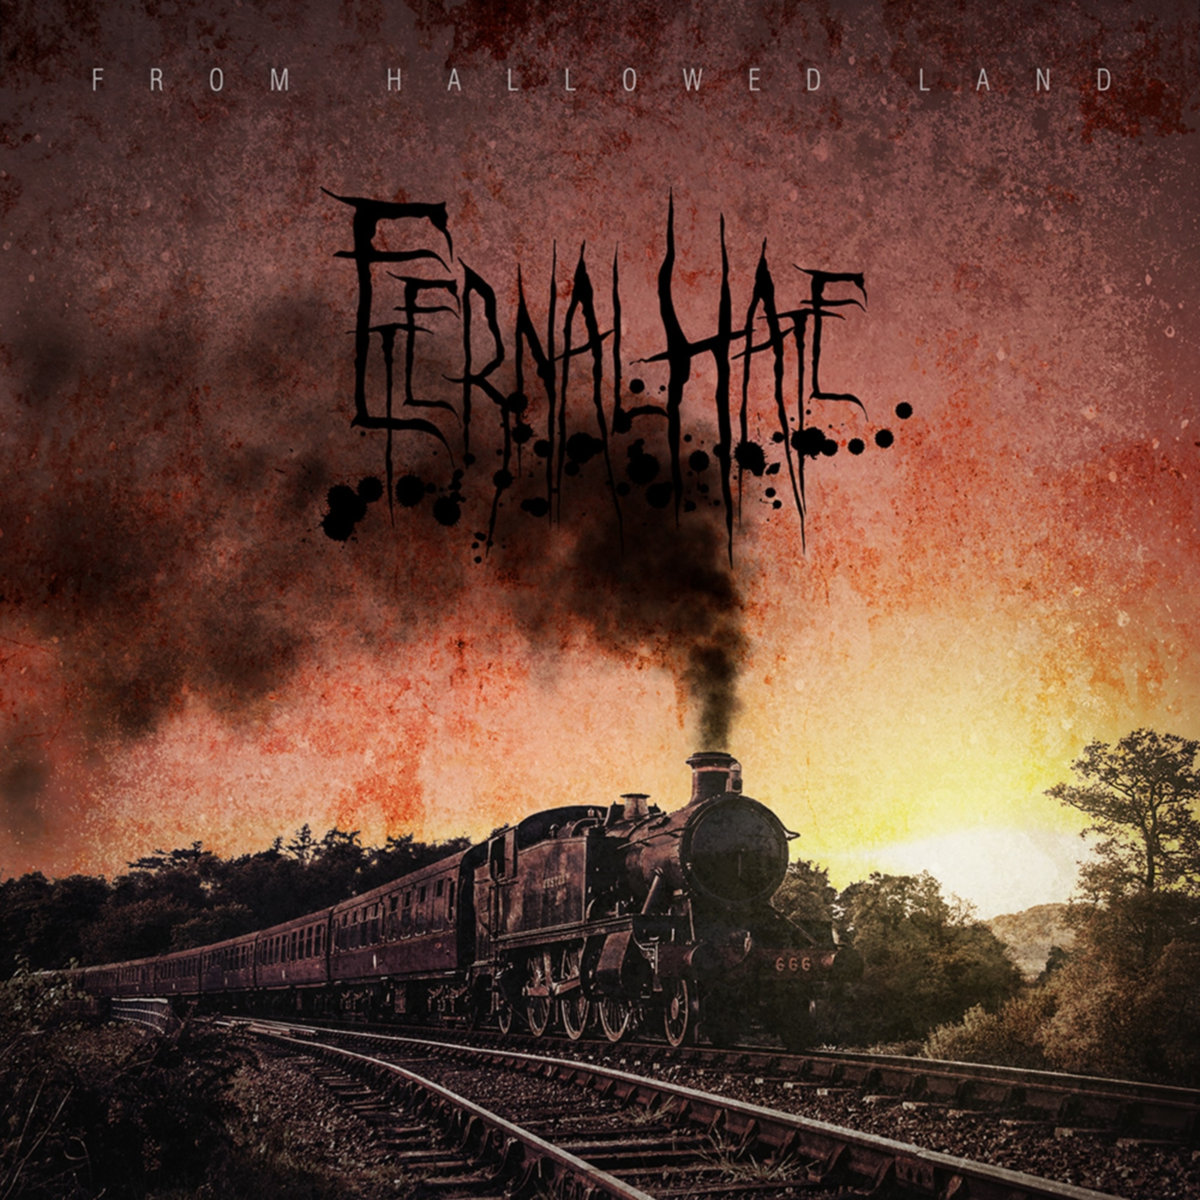 https://zombierecords666.bandcamp.com/album/eternal-hate-from-hallowed-land-russia